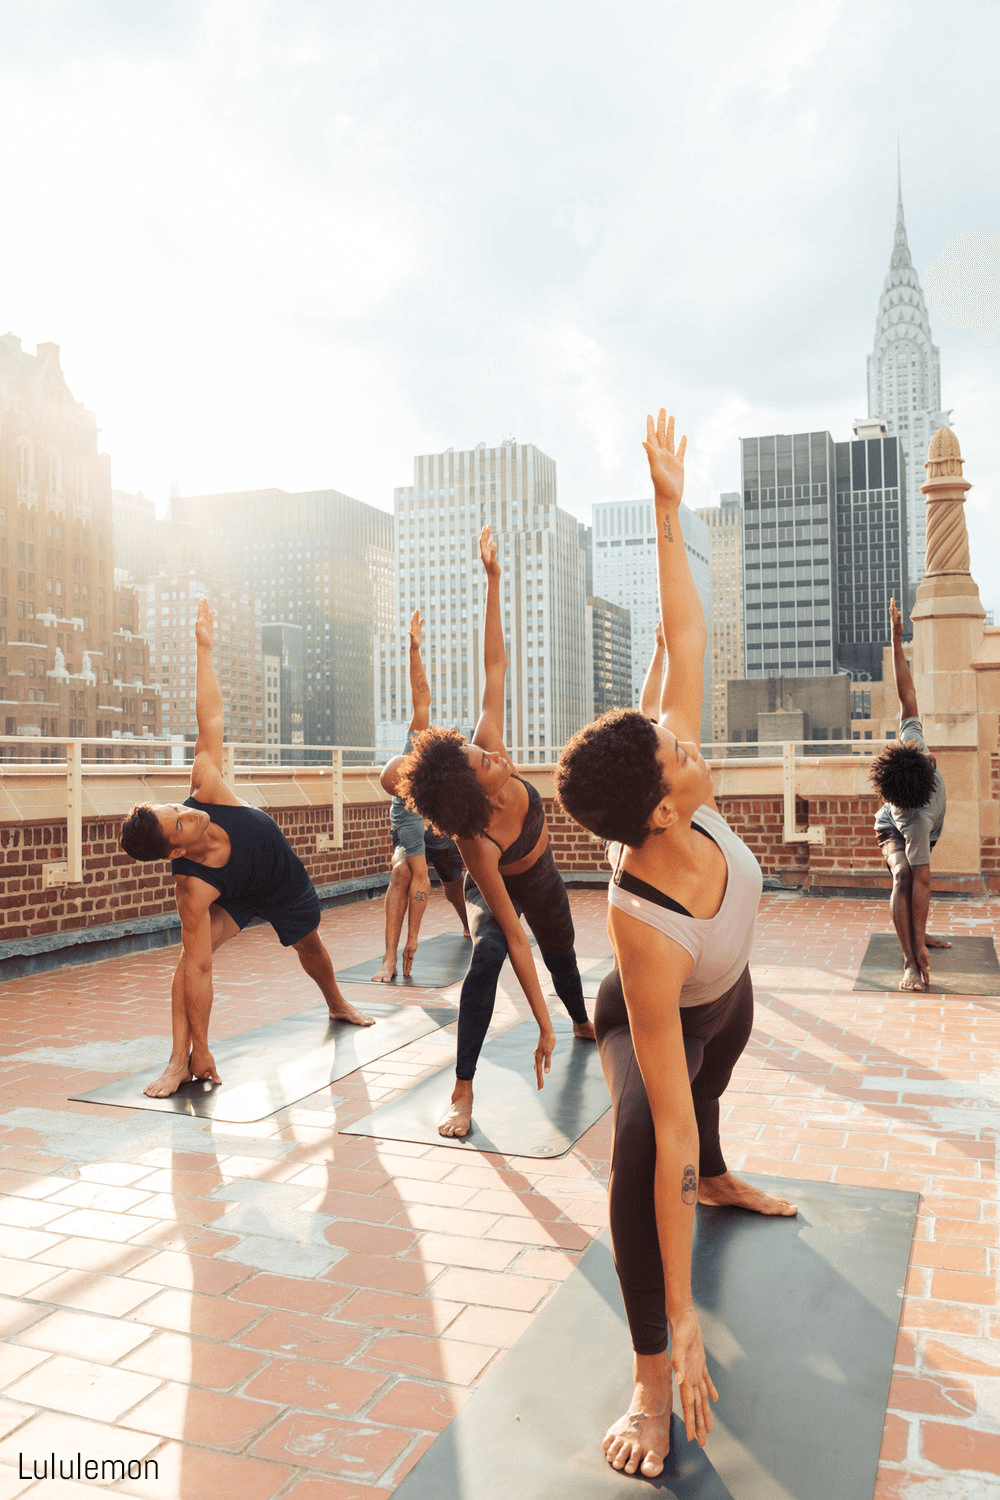 Models do yoga in Lululemon